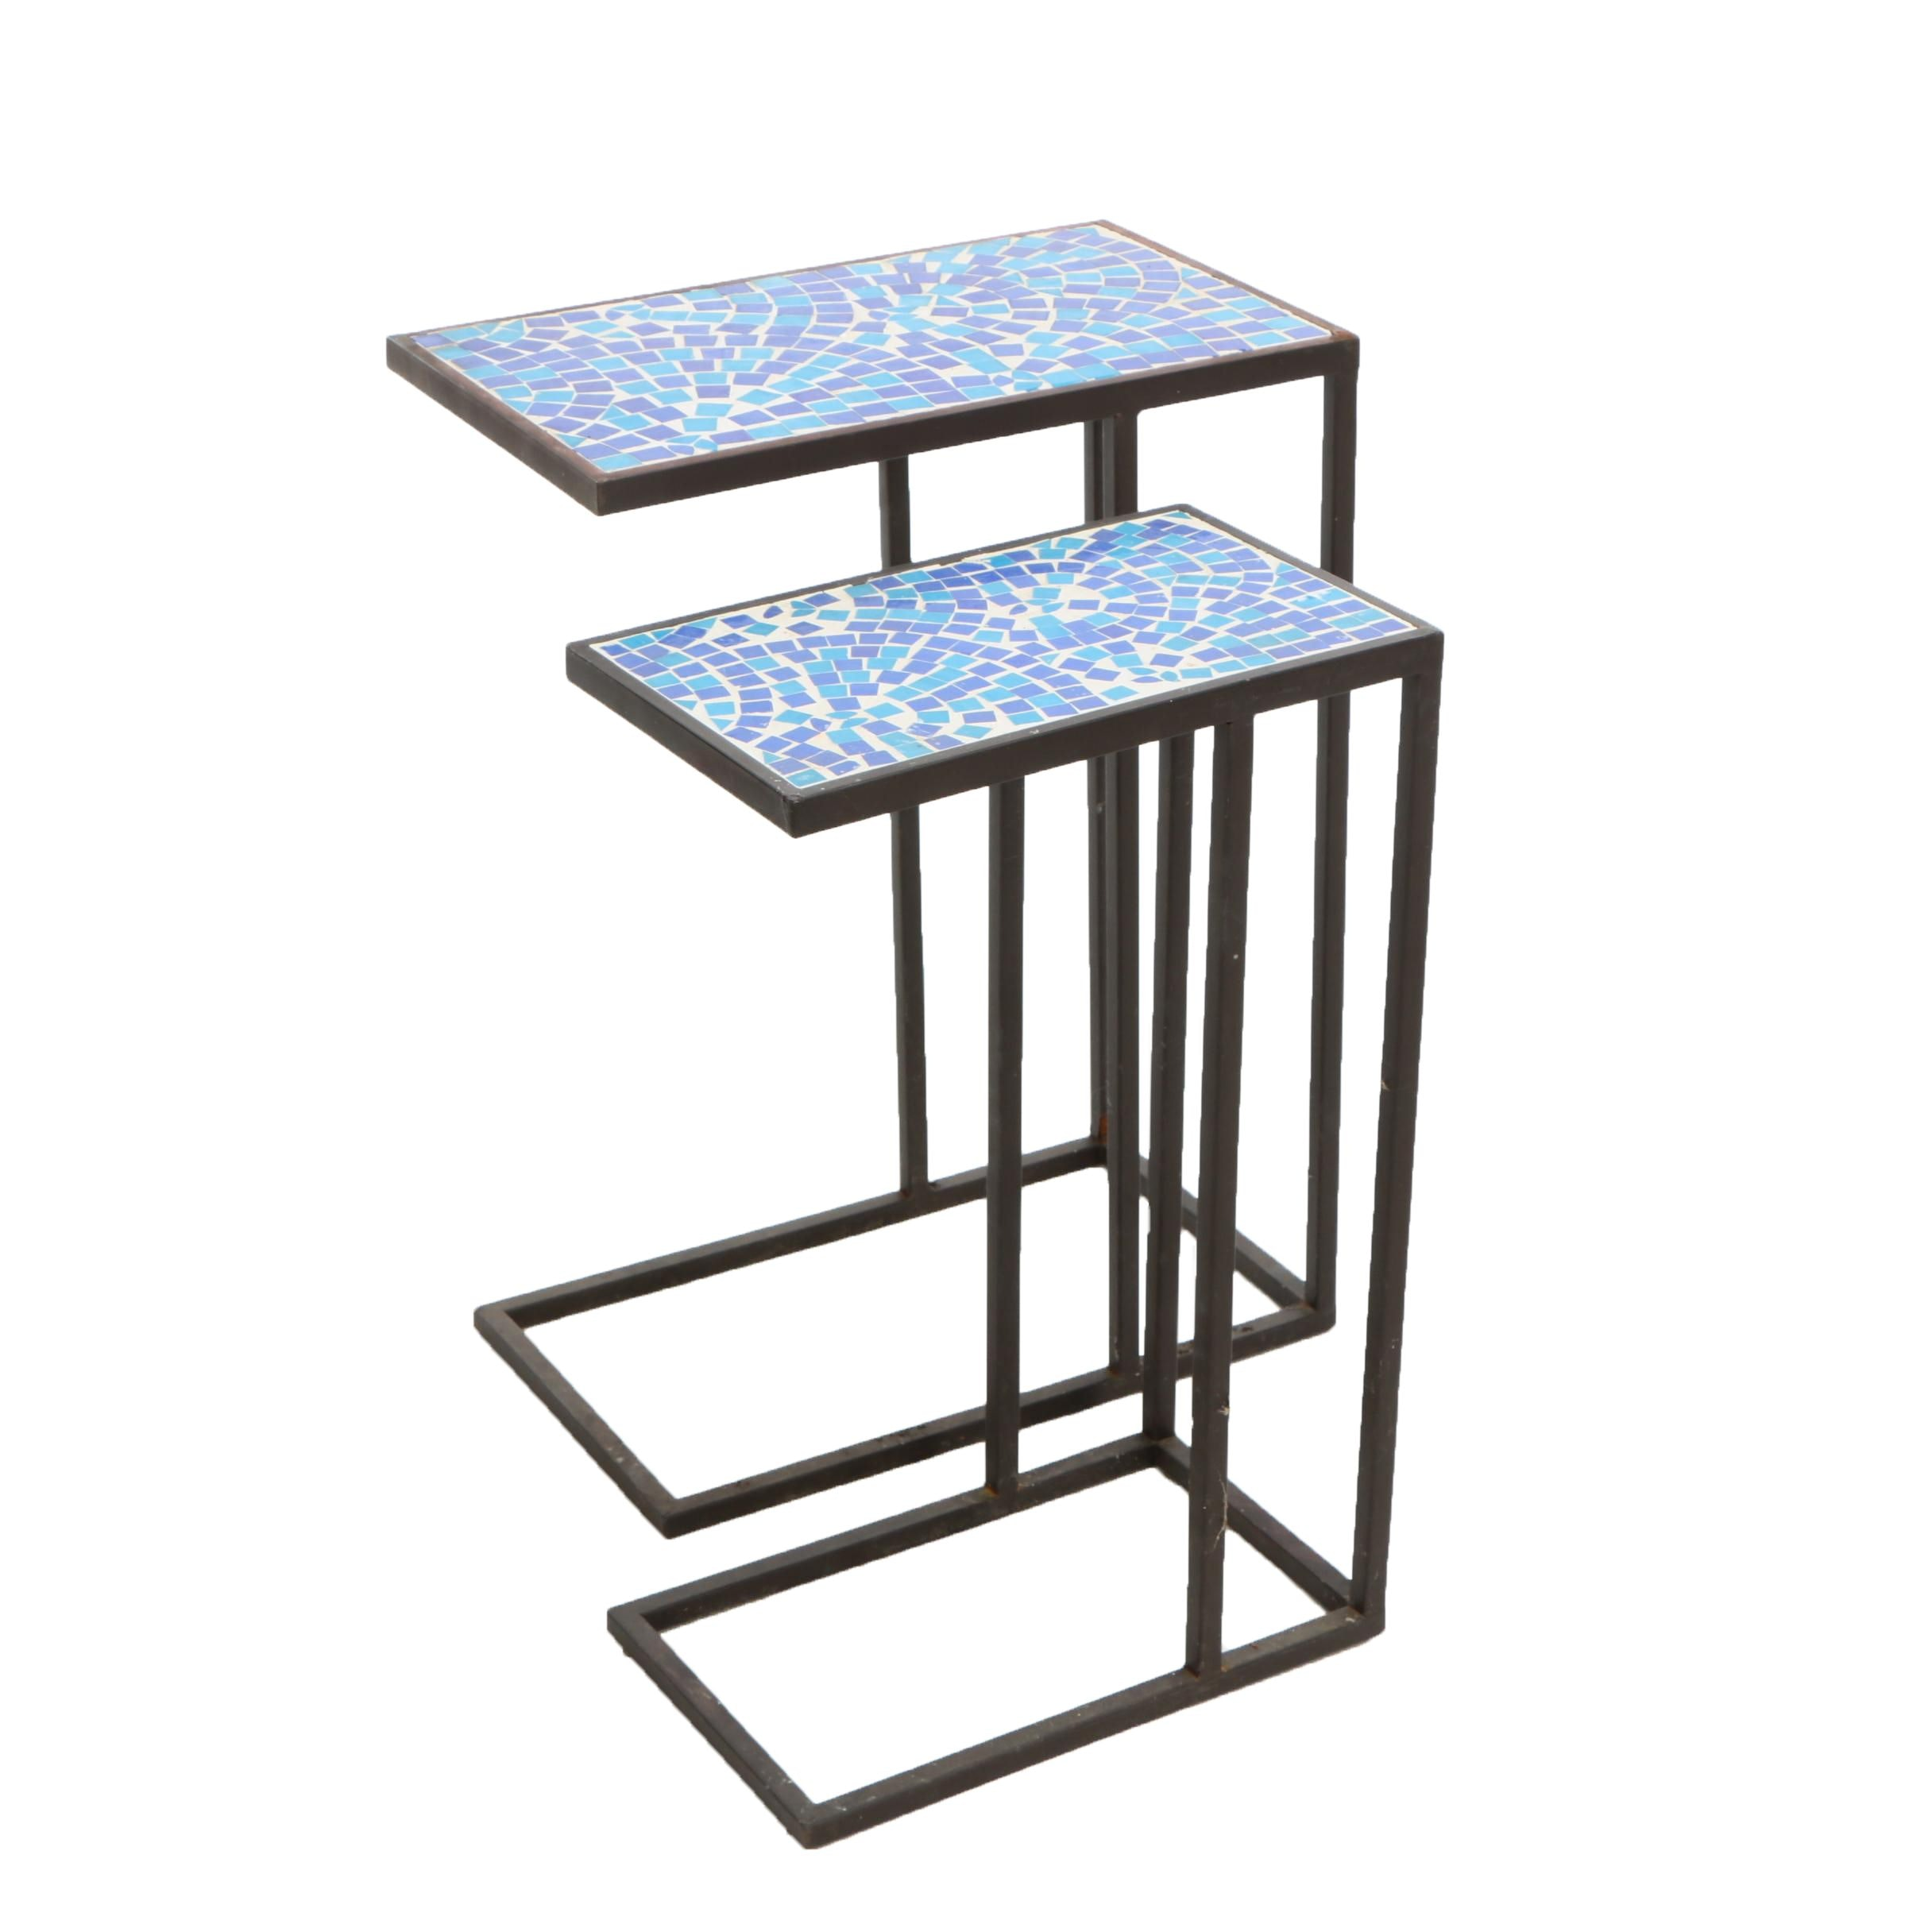 Metal and Ceramic Tile Mosaic Outdoor Nesting Tables